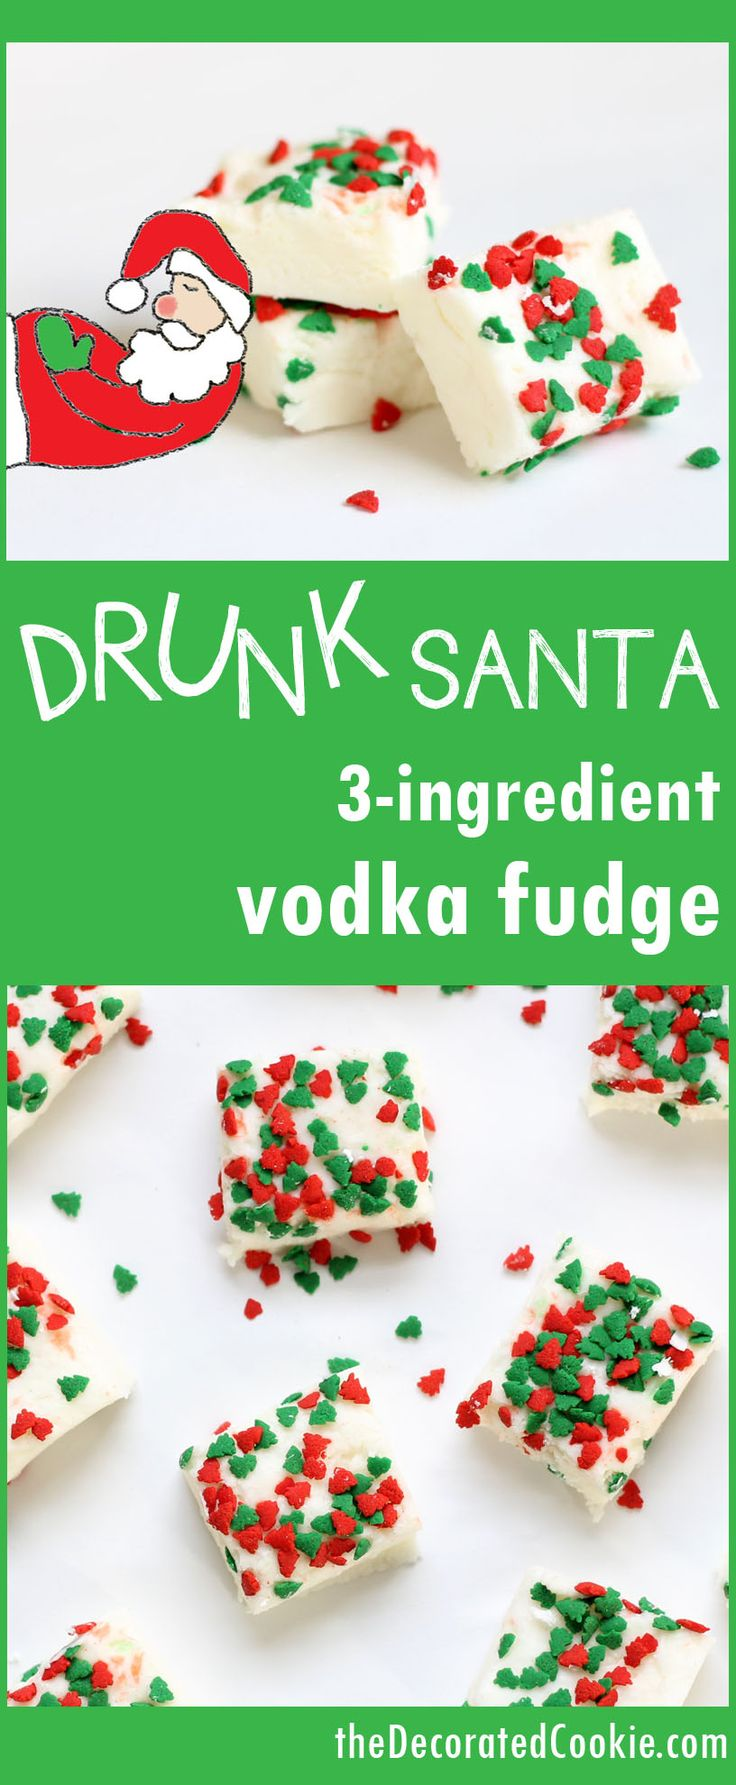 Adult fudge recipe! Drunk Santa fudge for Christmas - 3-ingredient boozy vodka fudge